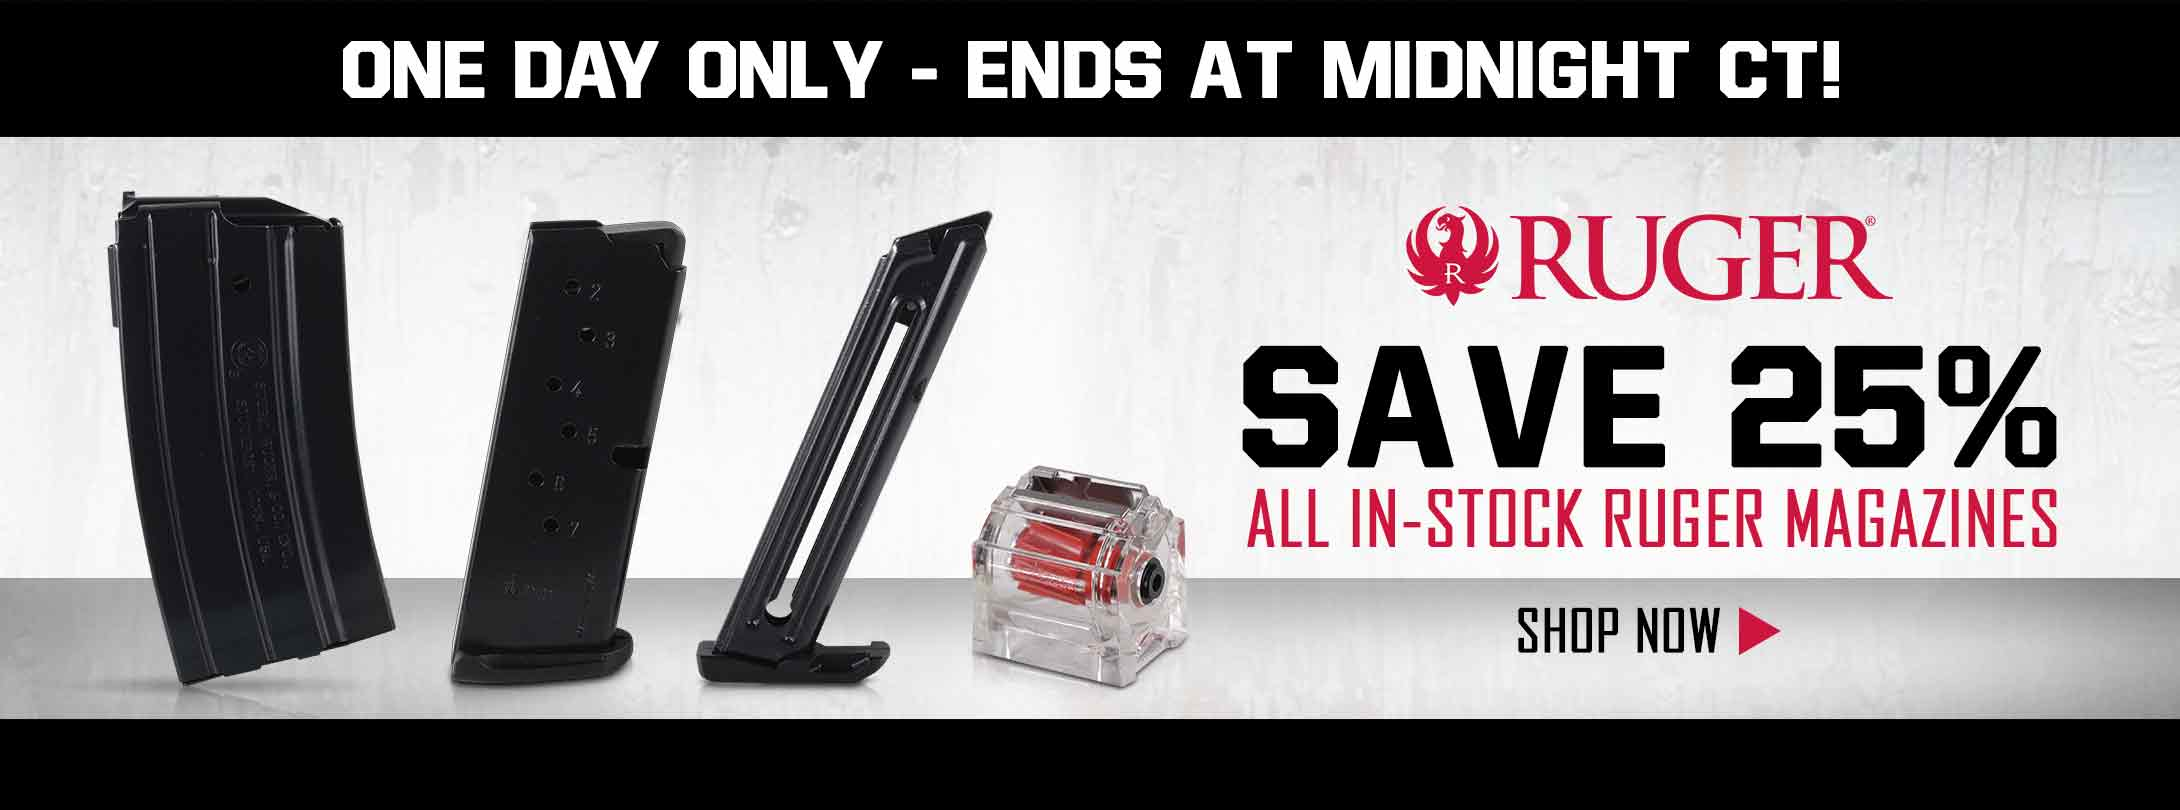 Save 25% on All In-Stock Ruger Magazines